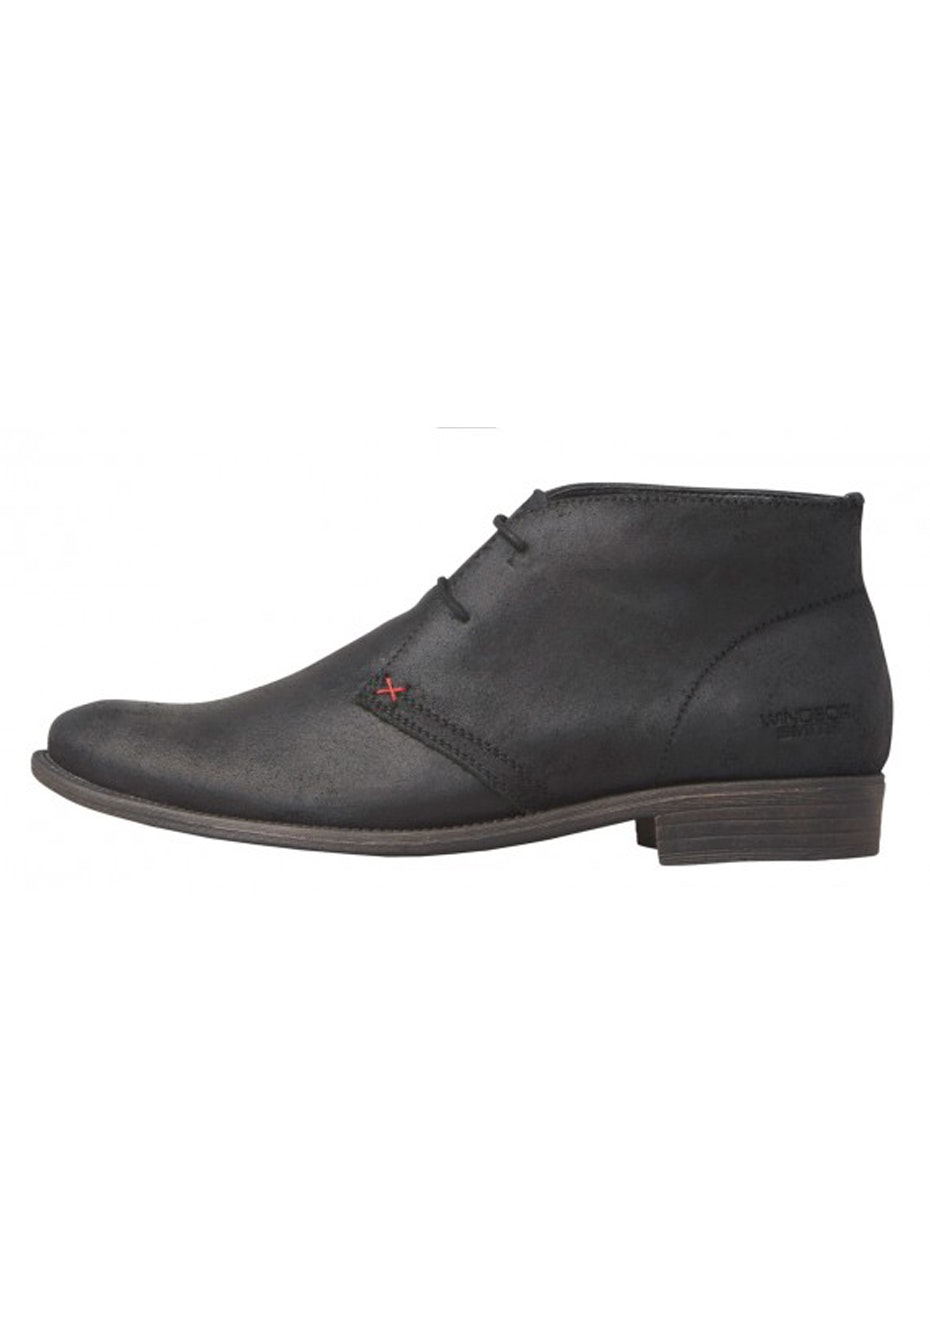 Windsor Smith - Harvard - Black Oil Suede